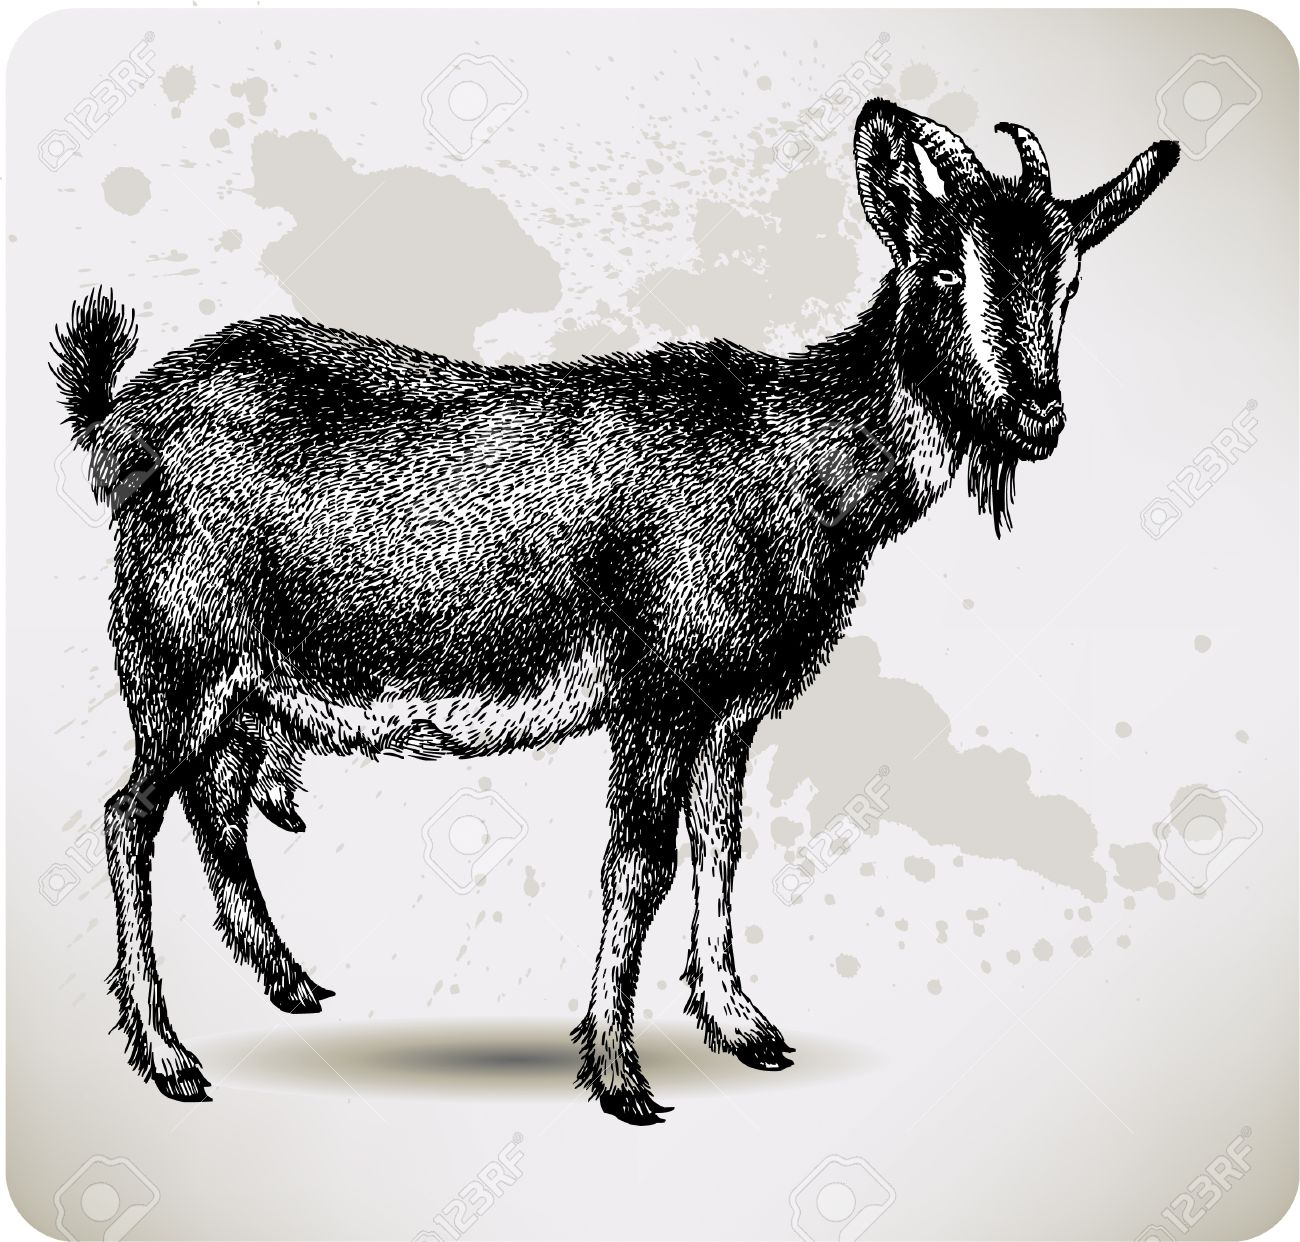 Black goat with horns, hand-drawing. Vector illustration. Stock Vector - 11651238